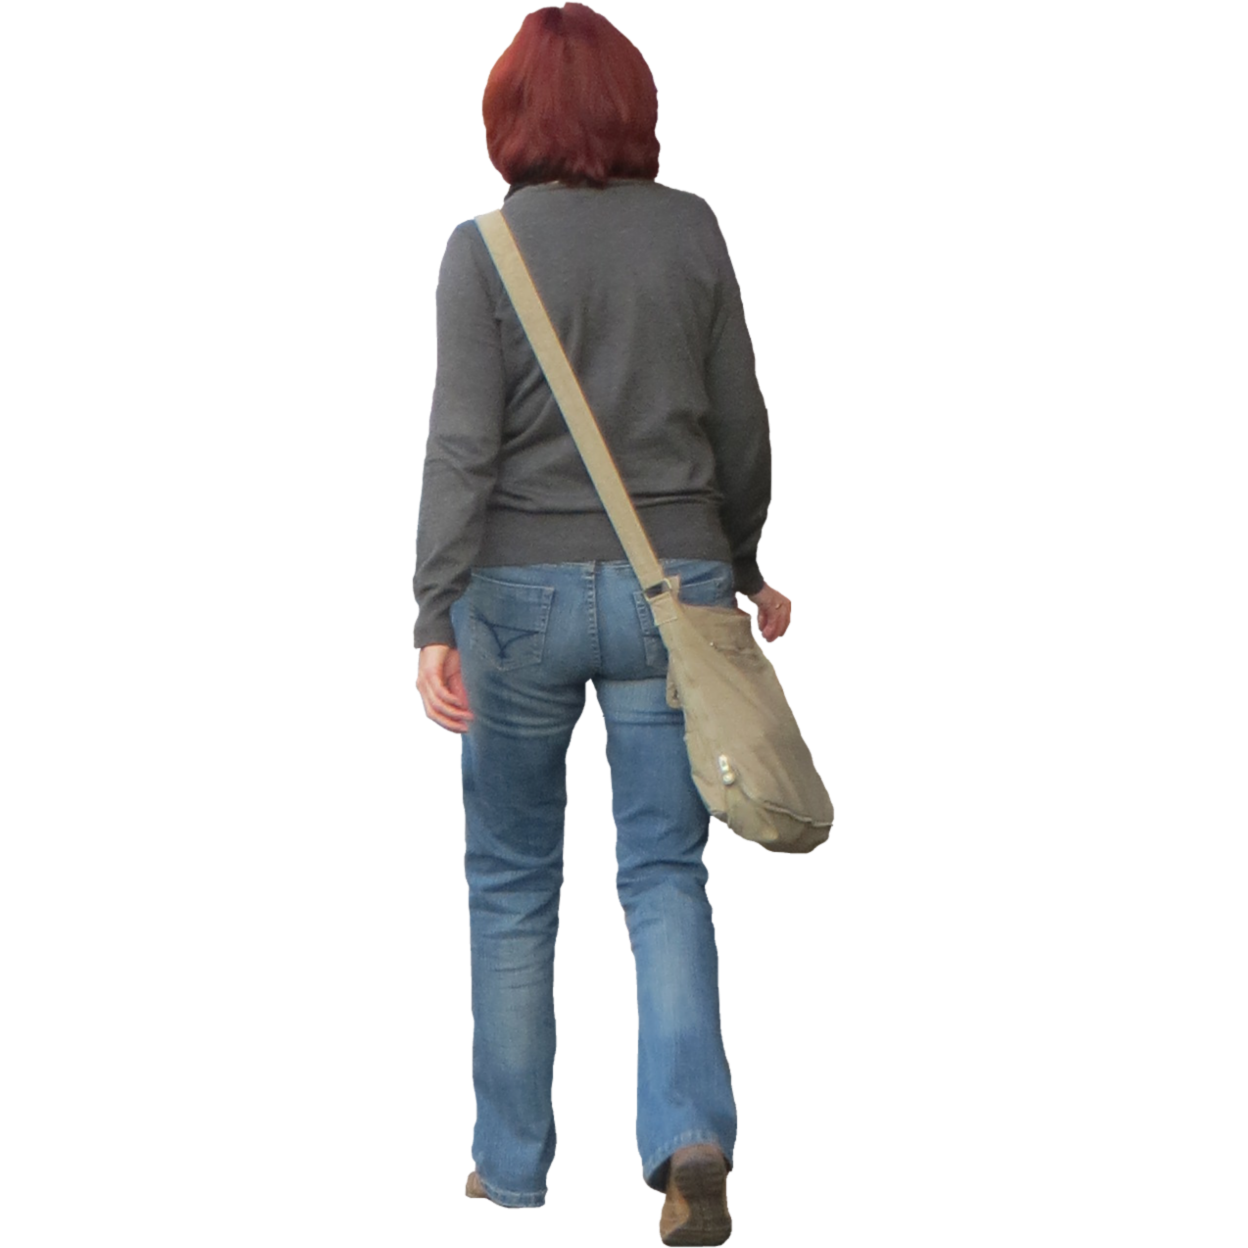 Walking away png. Person google search dream